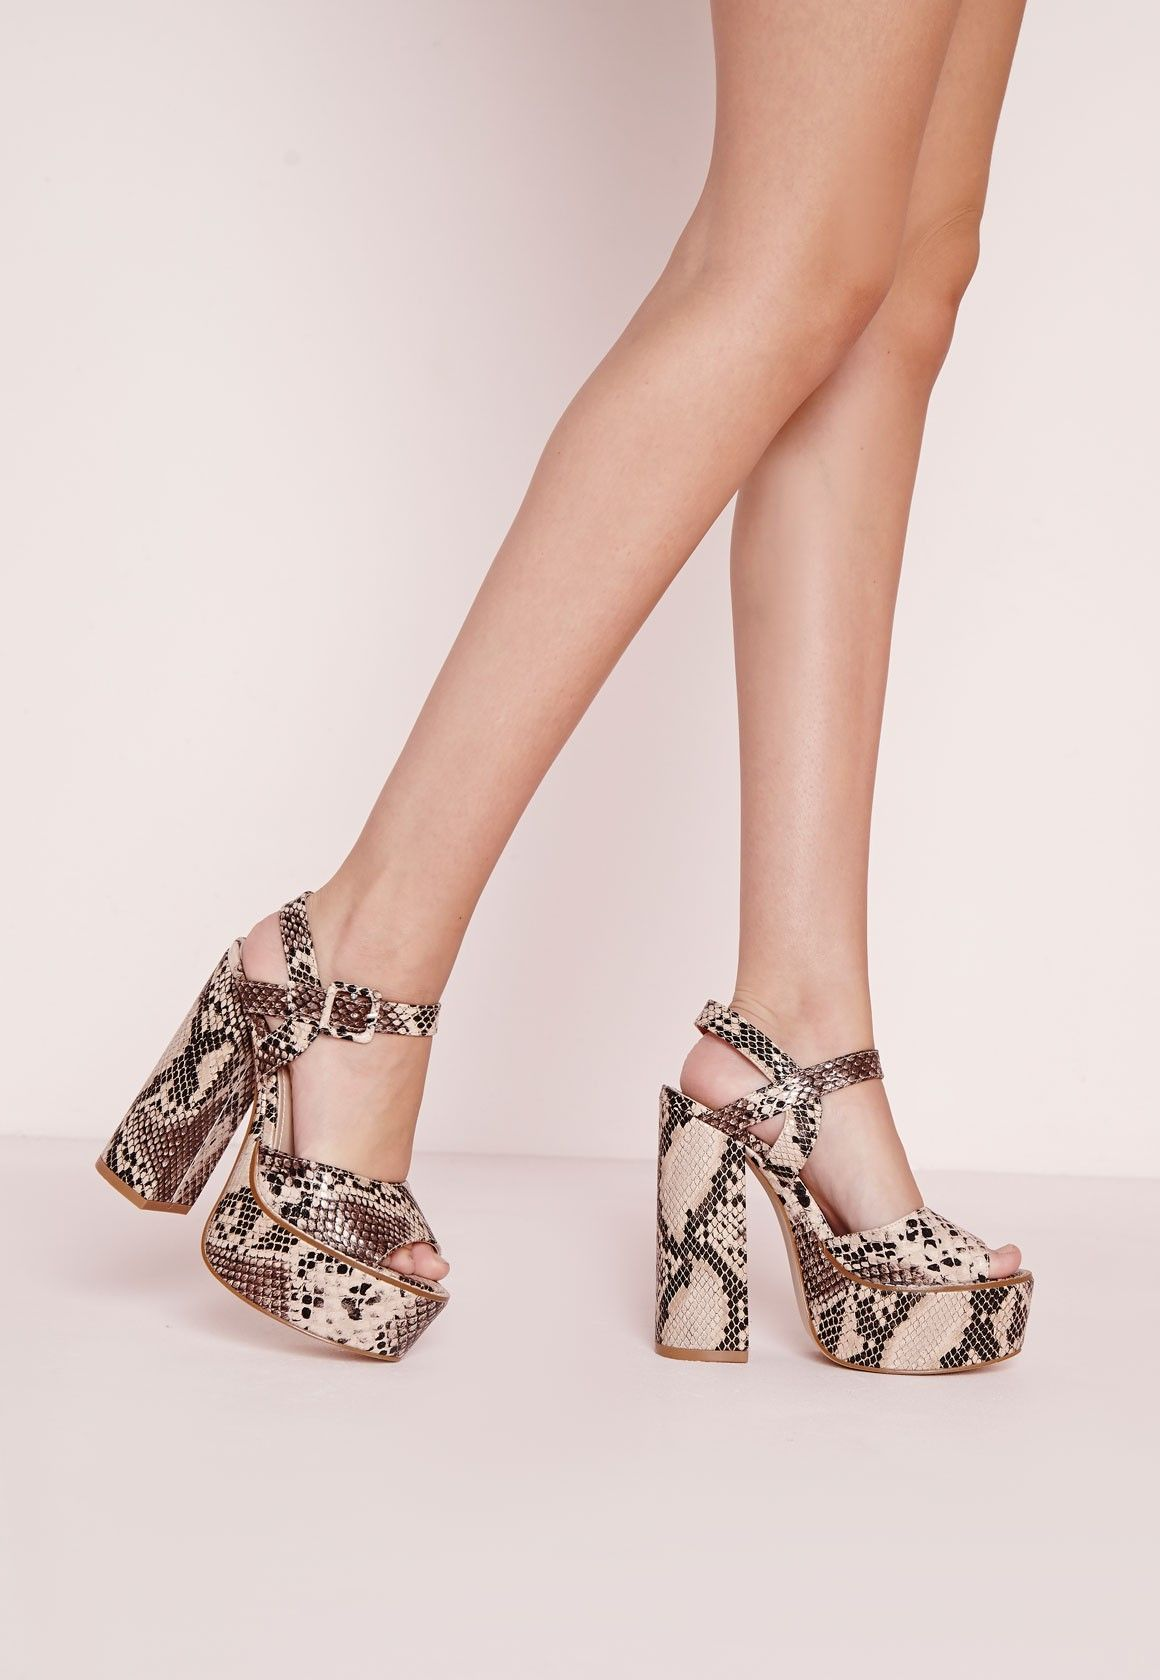 2243b25075f68 Missguided - 70's Platform Block Heel Sandals Snakeskin | clothing ...